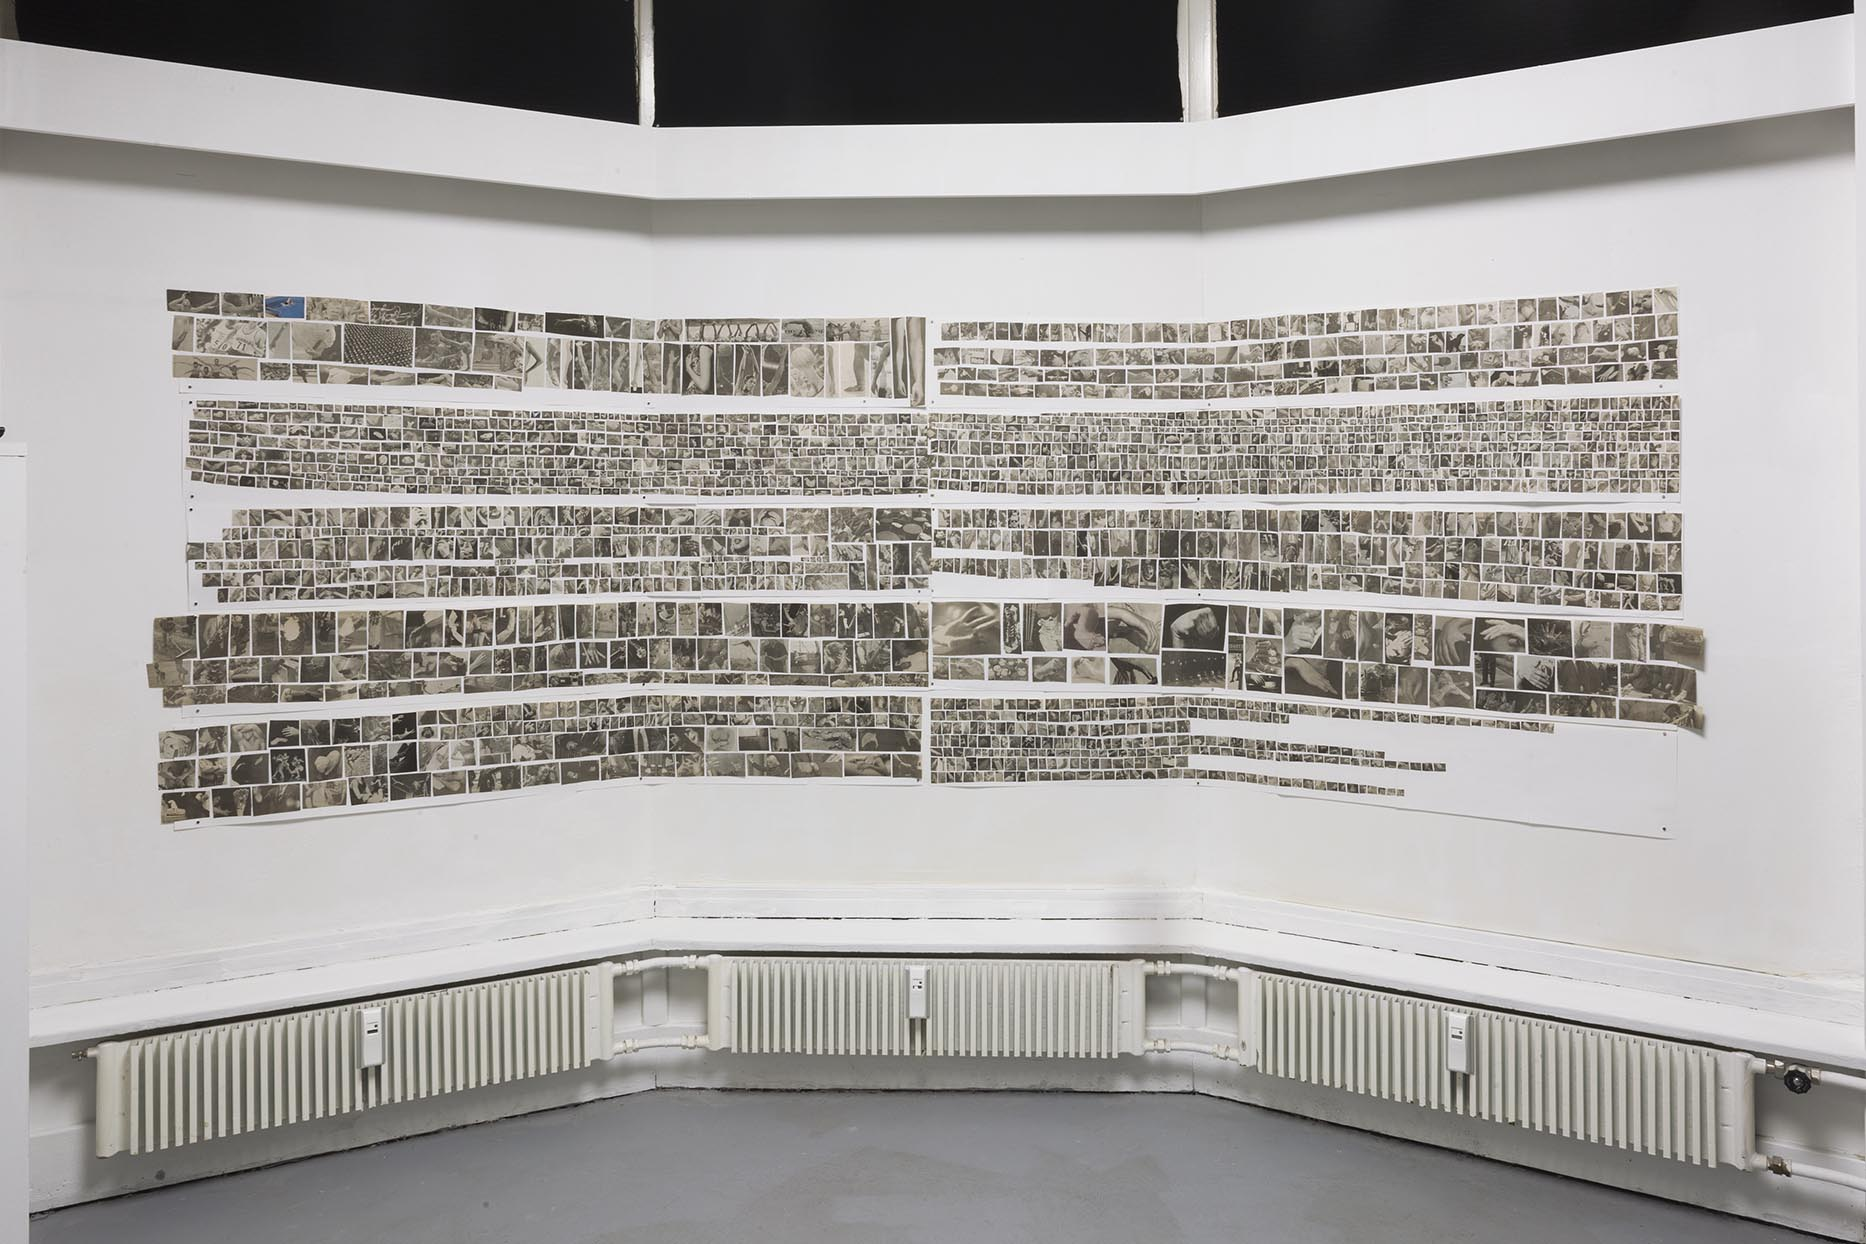 Hans Witschi,  THE HANDBOOK 2  (a selection of 10 strips out of 169 strips in a wooden box), 1997, mixed media, each ca. 24,4 x 177,8 cm Photo: Christoph Oeschger